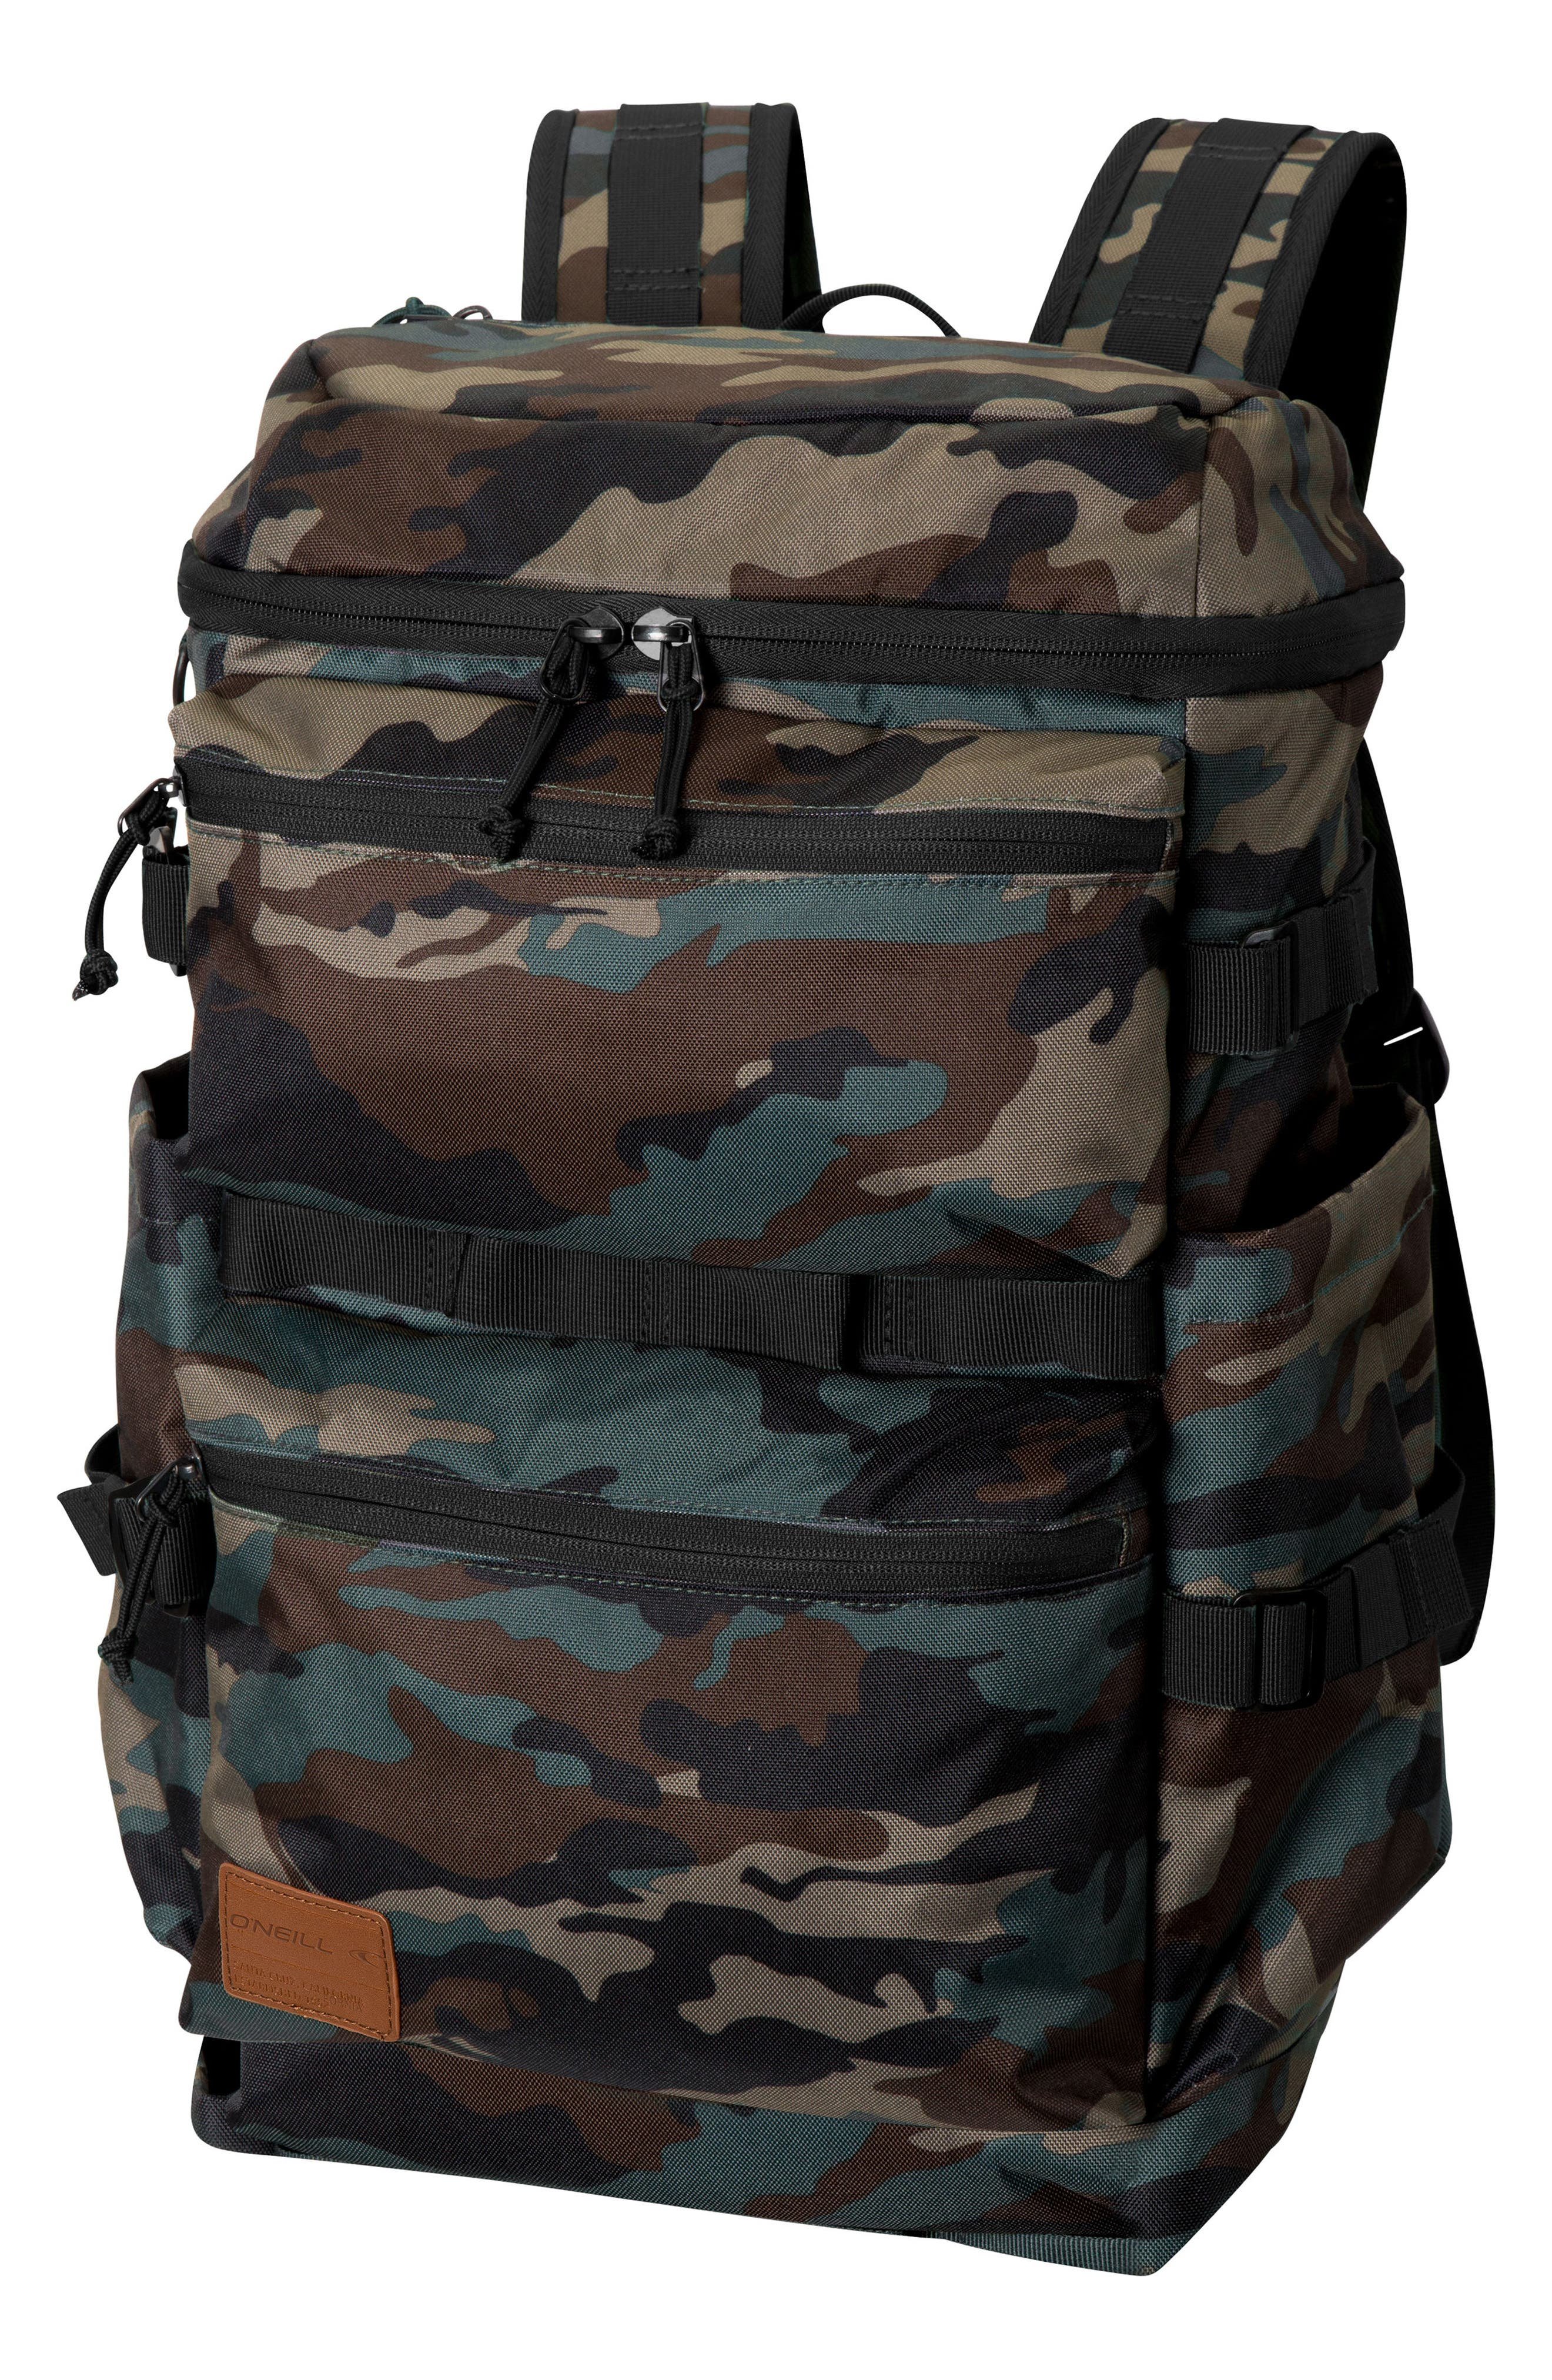 Hammond Backpack,                             Main thumbnail 1, color,                             Camo